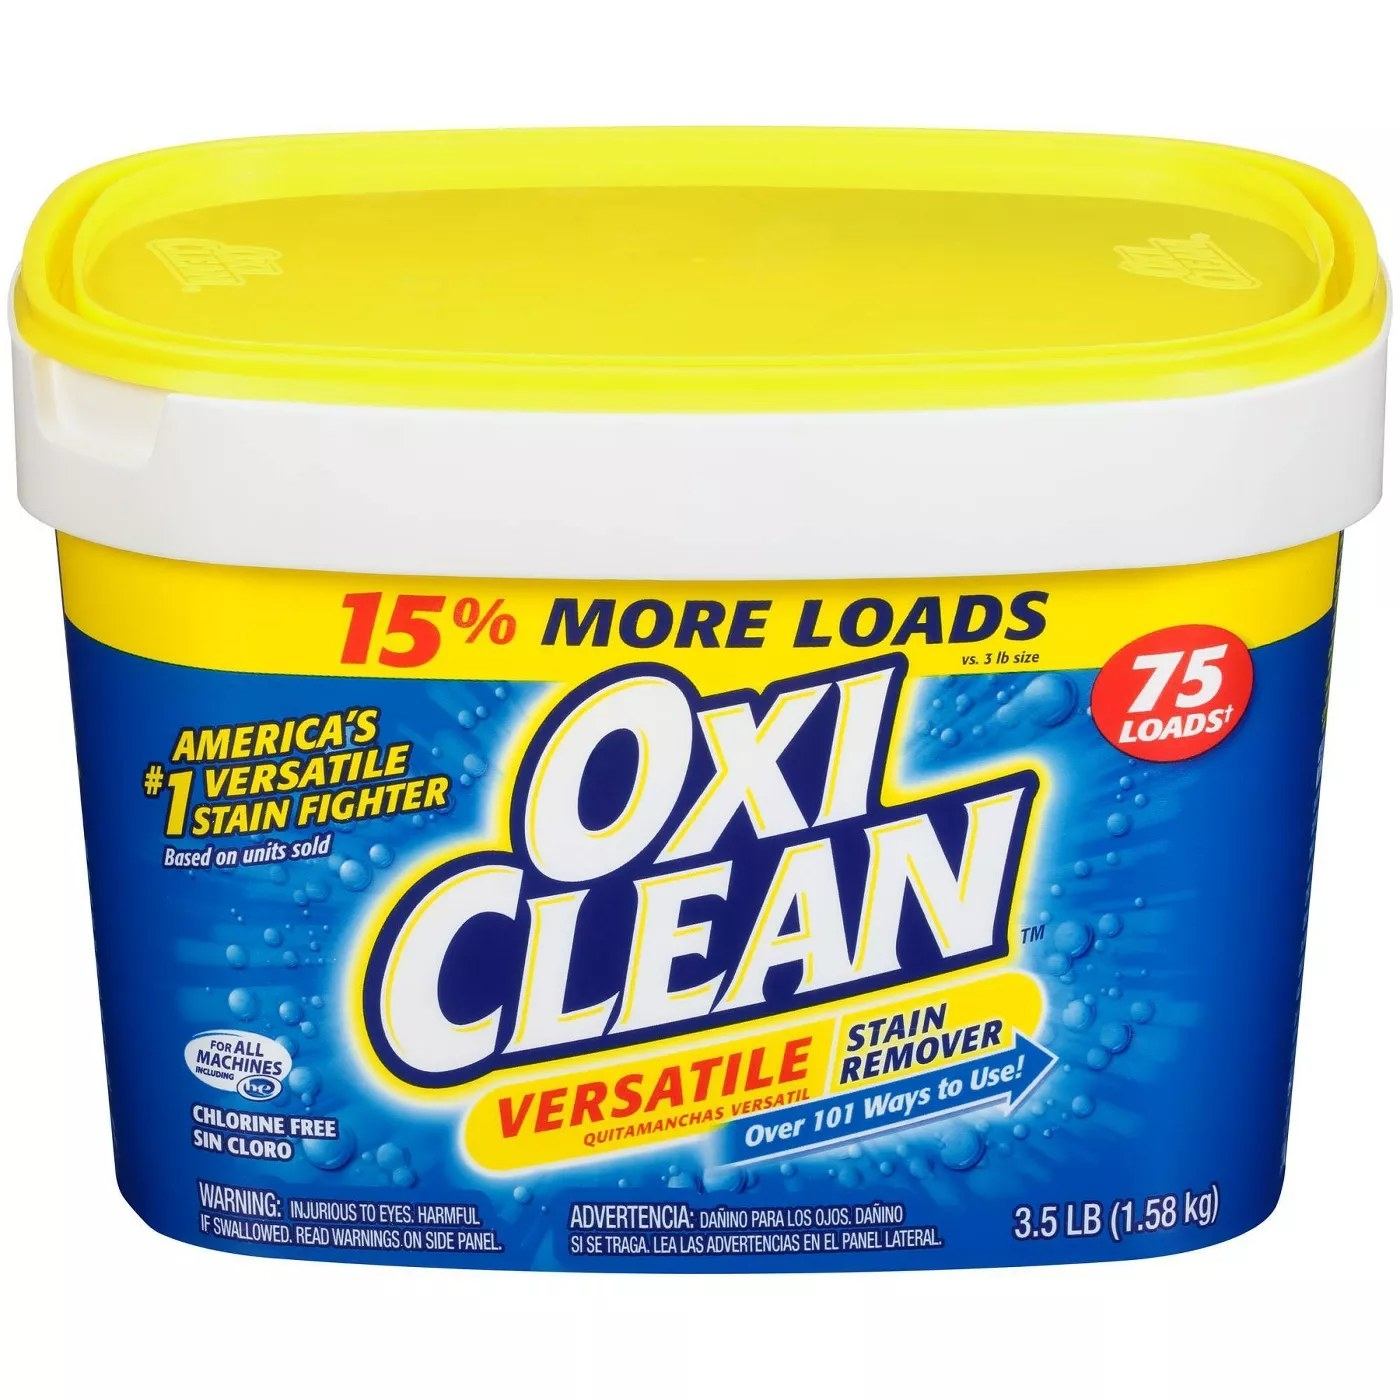 The 3.5-pound of OxiClean, a versatile stain remover with over 101 uses that can treat up to 75 loads